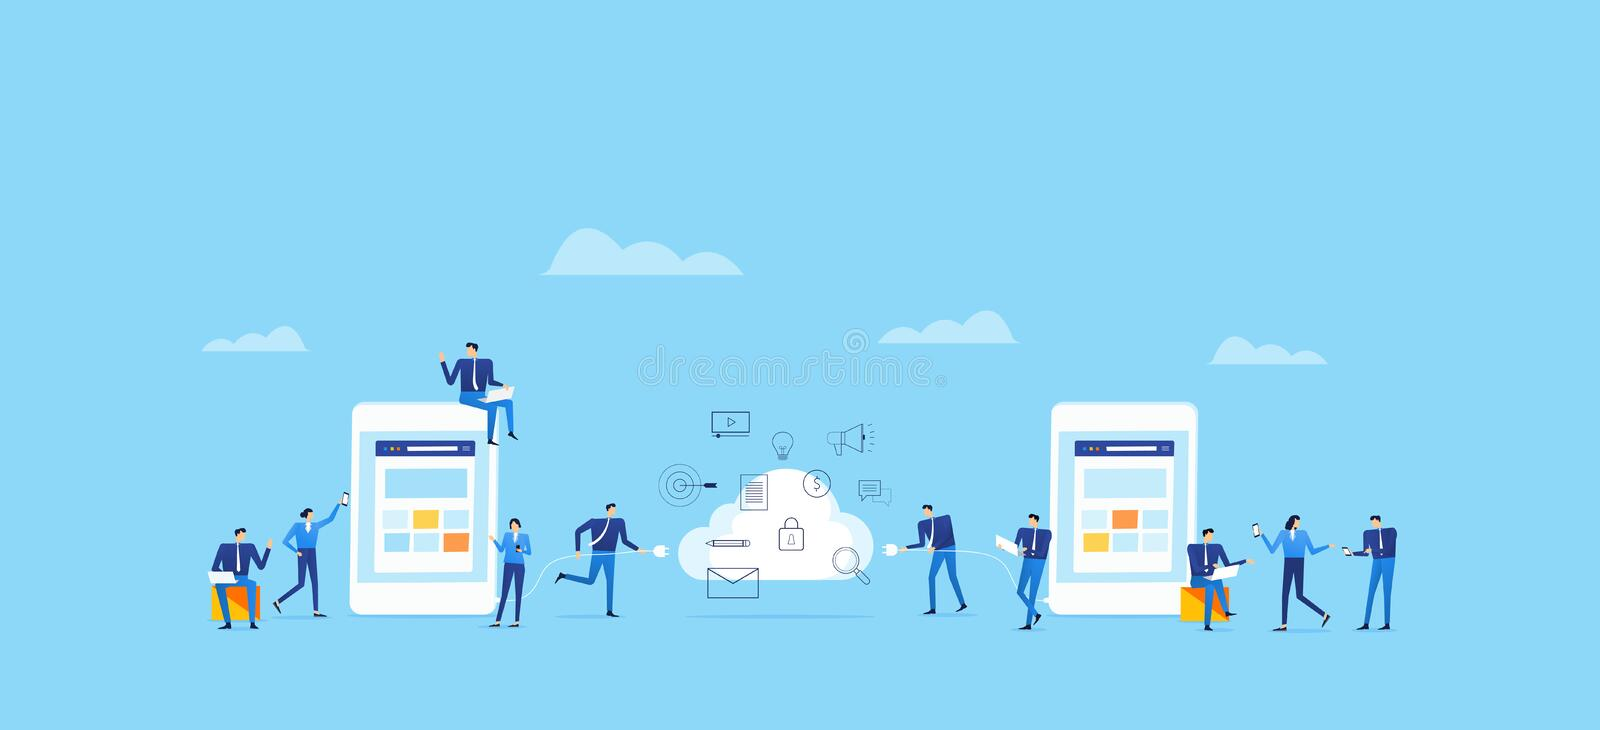 Business cloud computing and digital technology for business online royalty free illustration